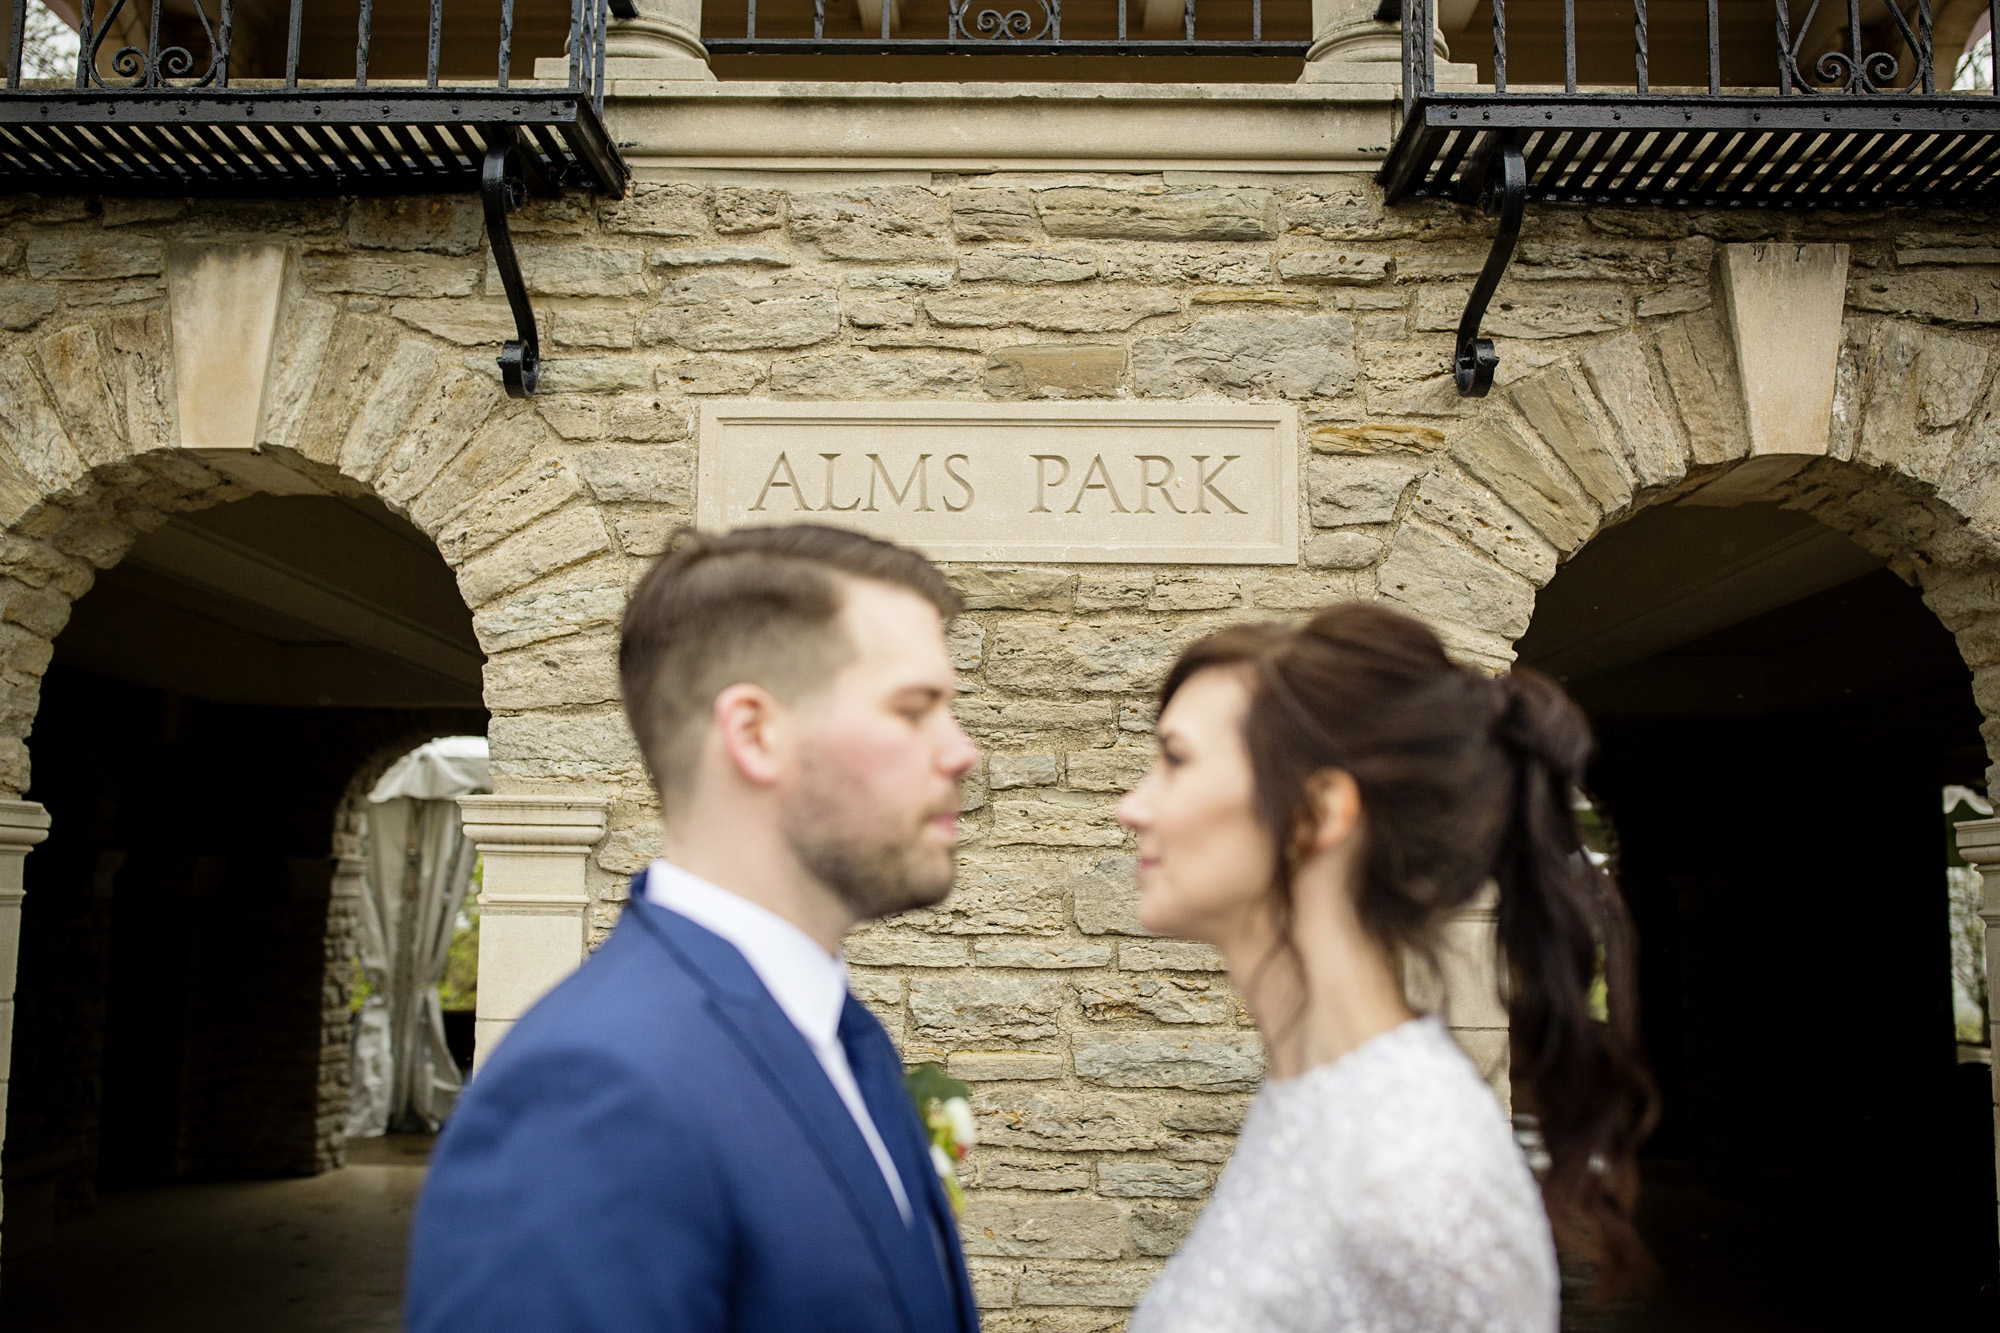 Seriously_Sabrina_Photography_Cincinnati_Ohio_Alms_Park_Elopement_Lauren_Aaron_12.jpg